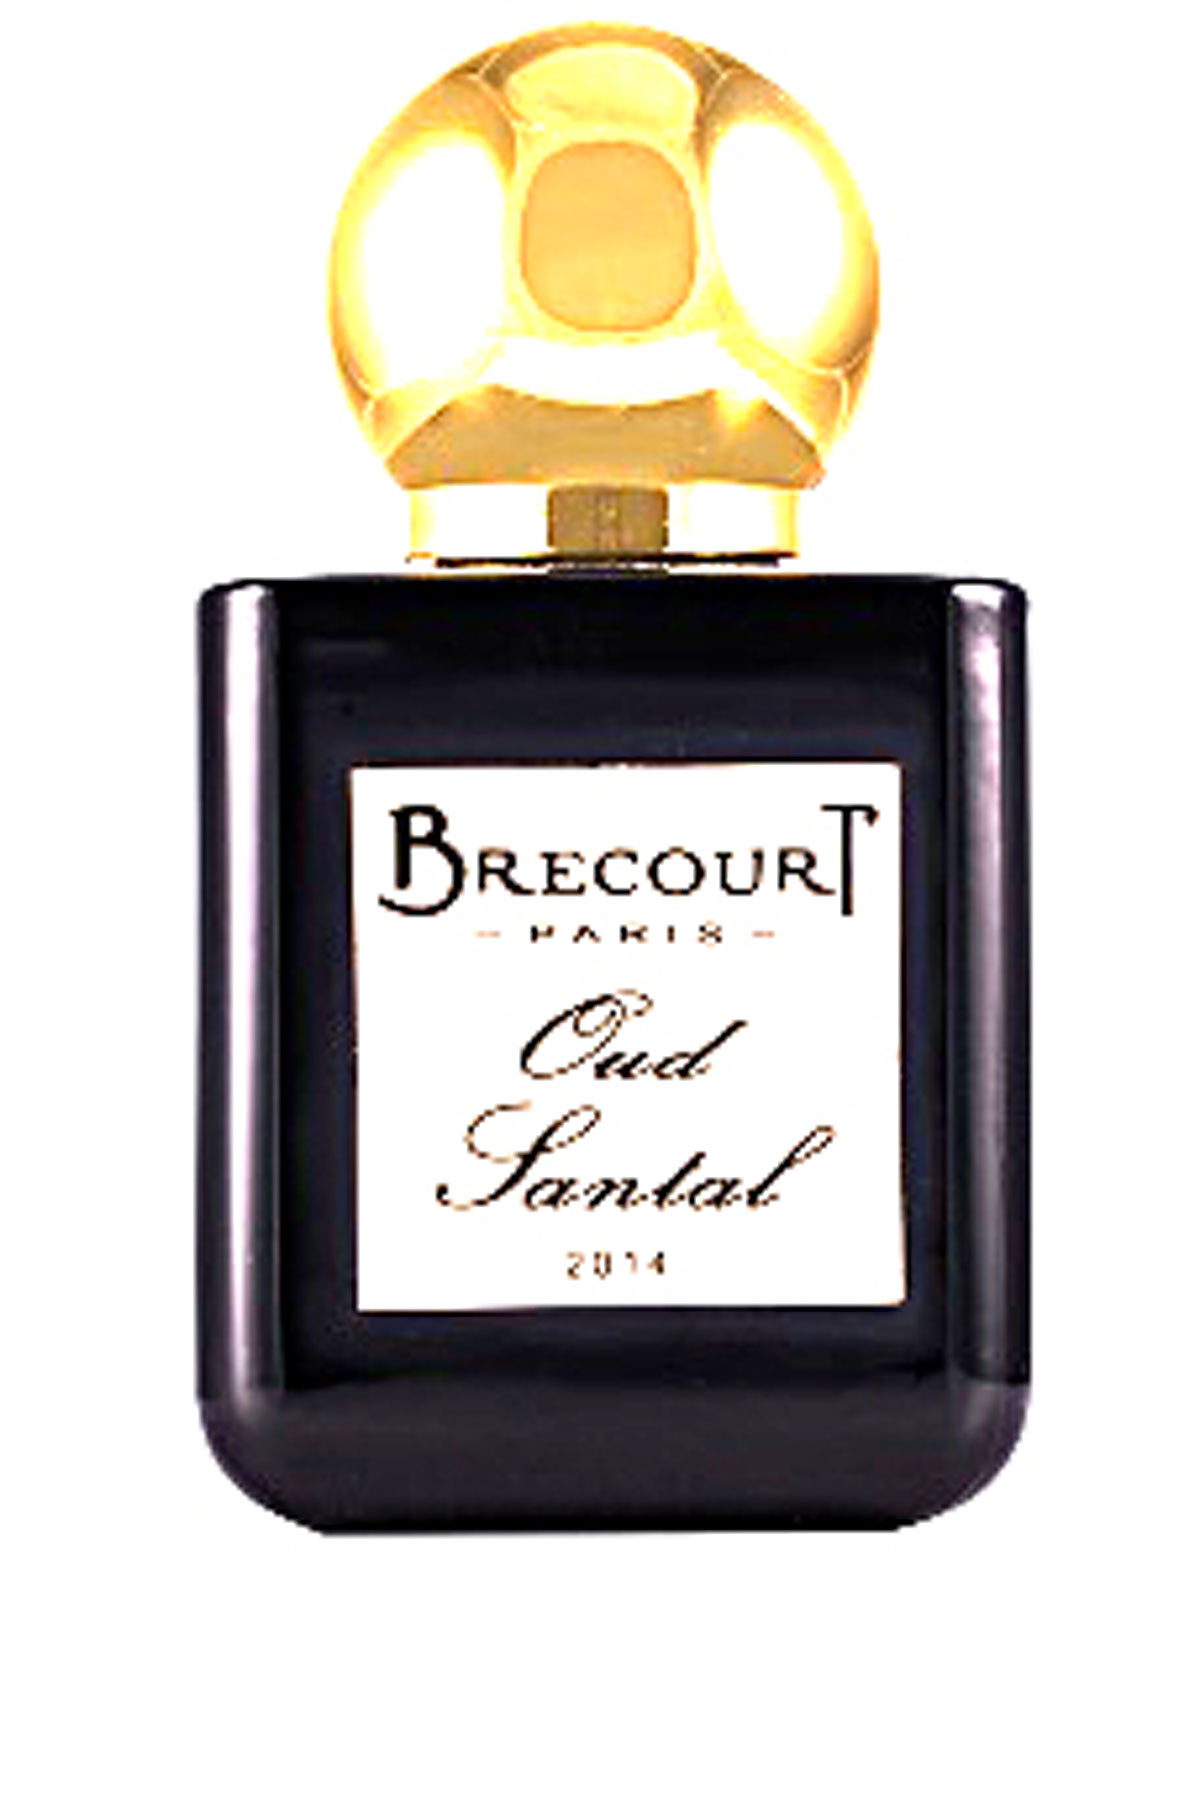 Brecourt Fragrances for Men, Oud Santal Eau De Parfum 50 Ml, 2019, 50 ml